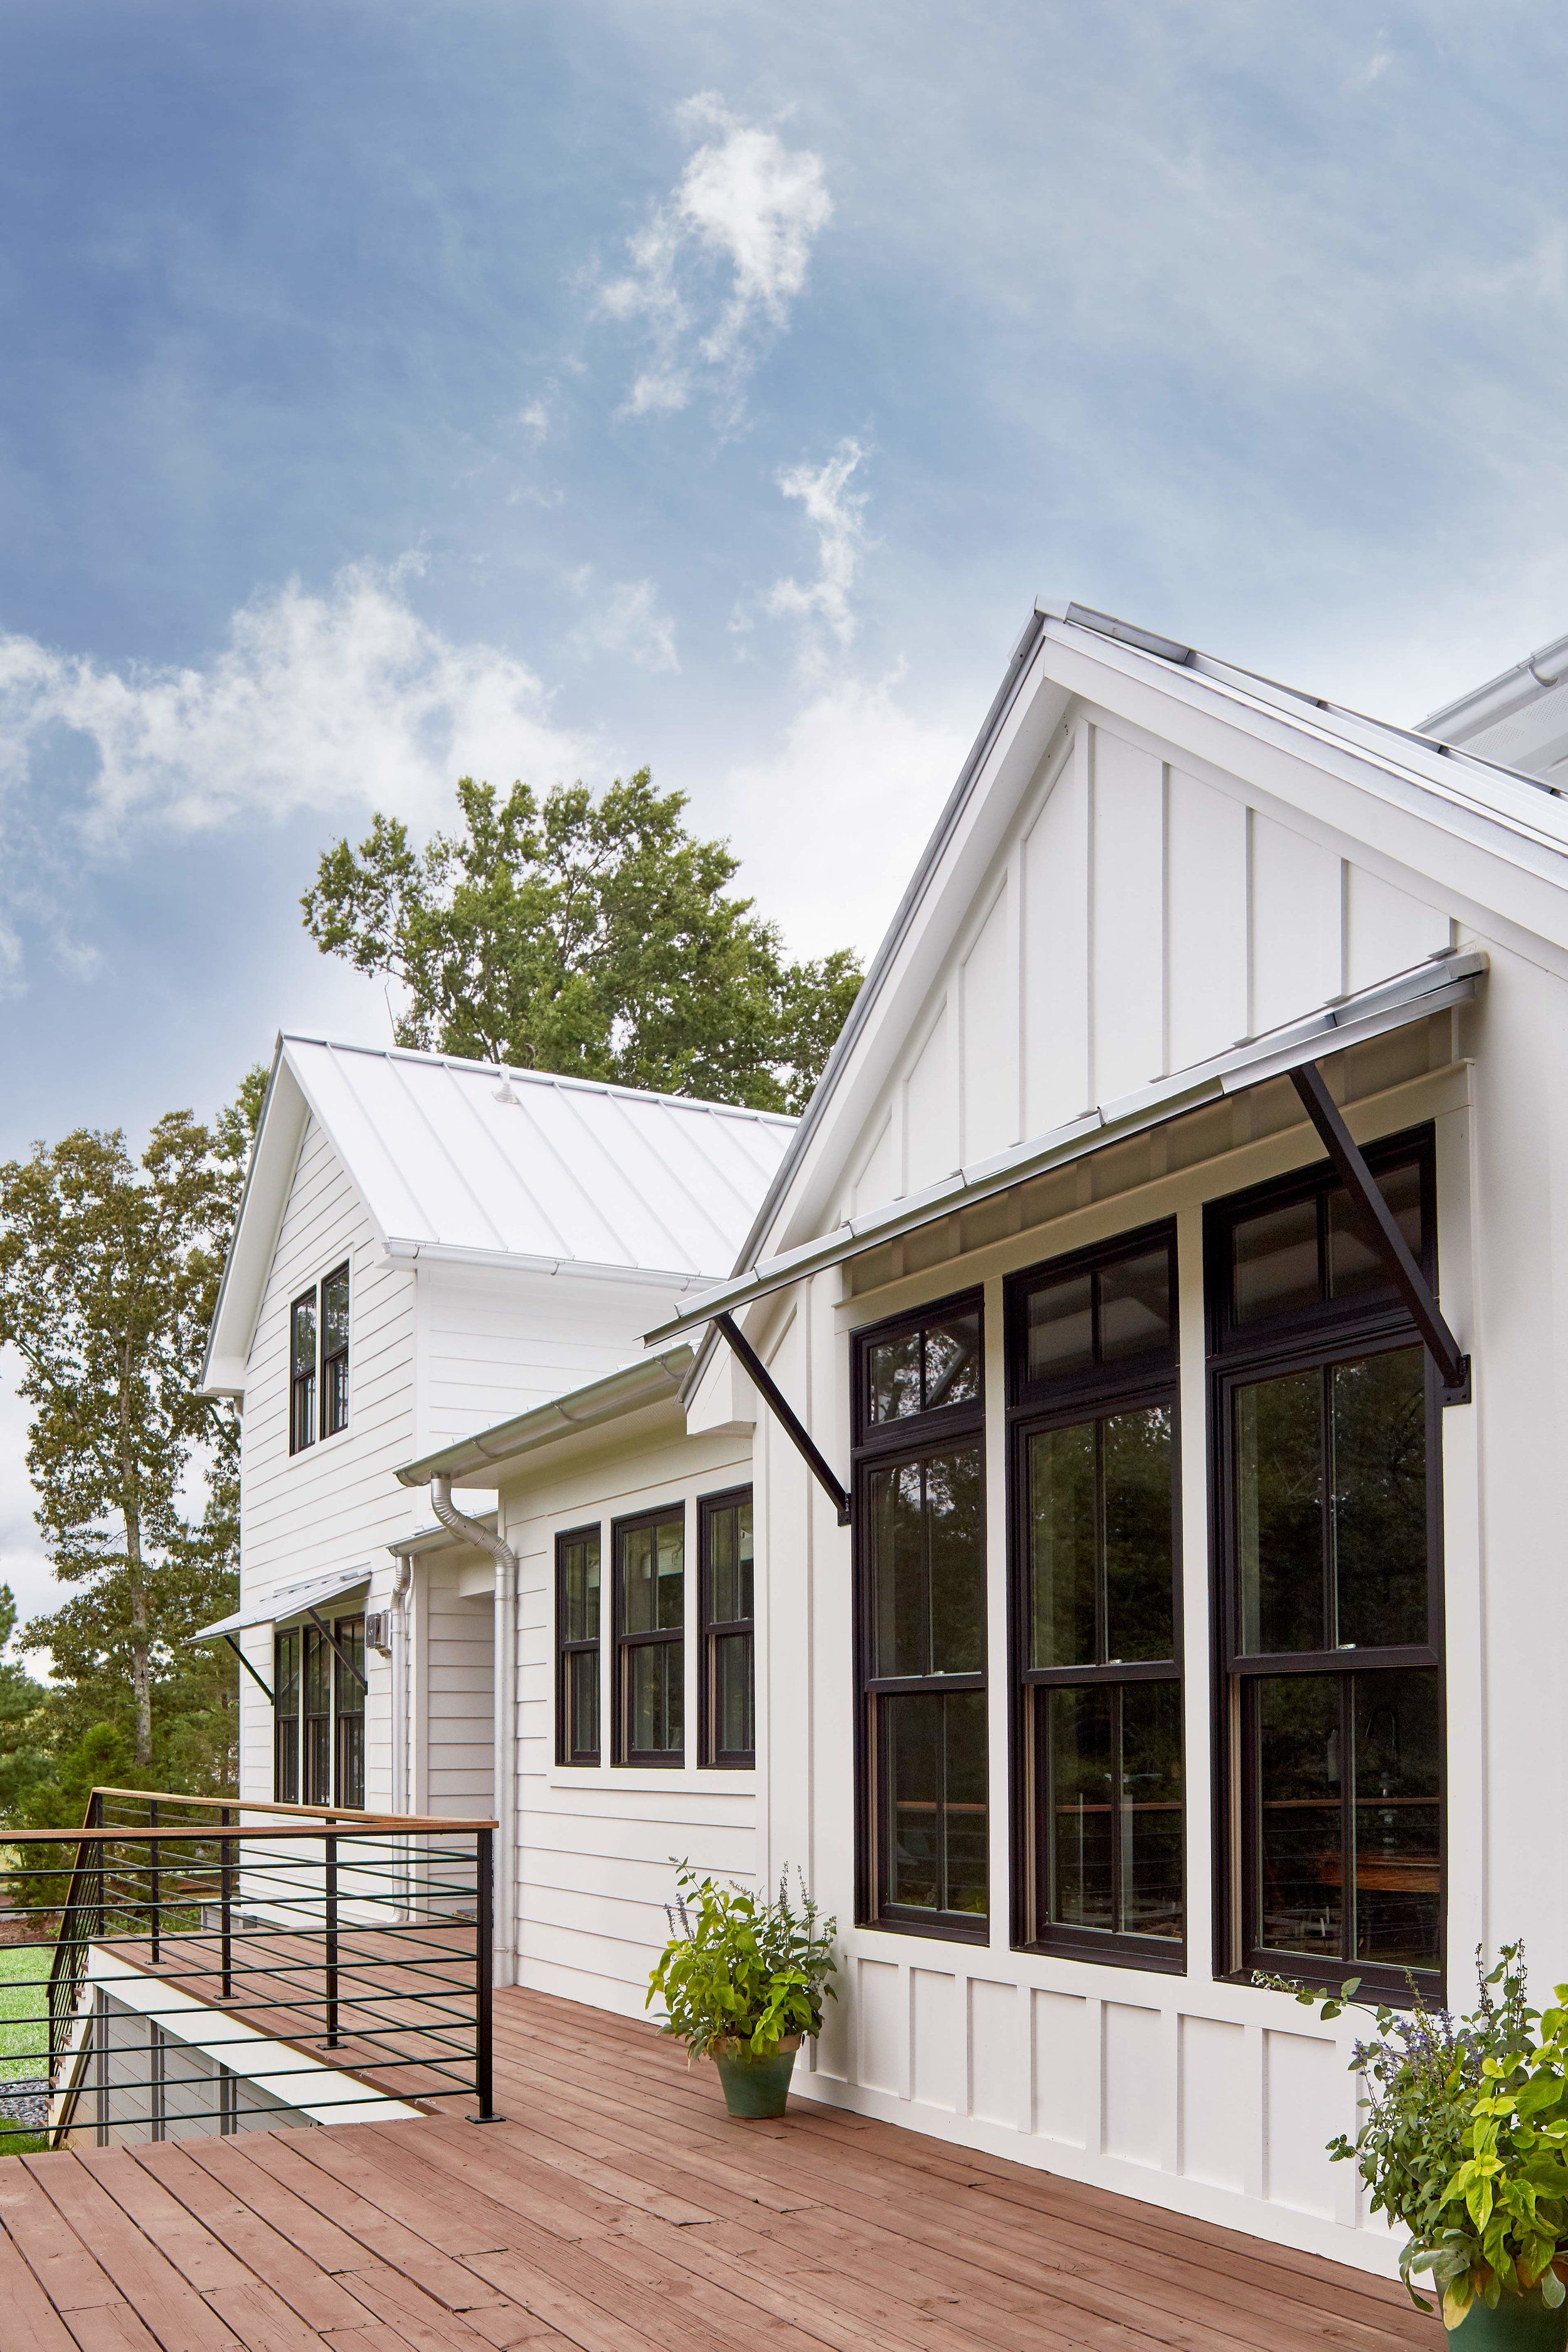 Rear exterior featuring new siding, new metal roof and custom awnings.